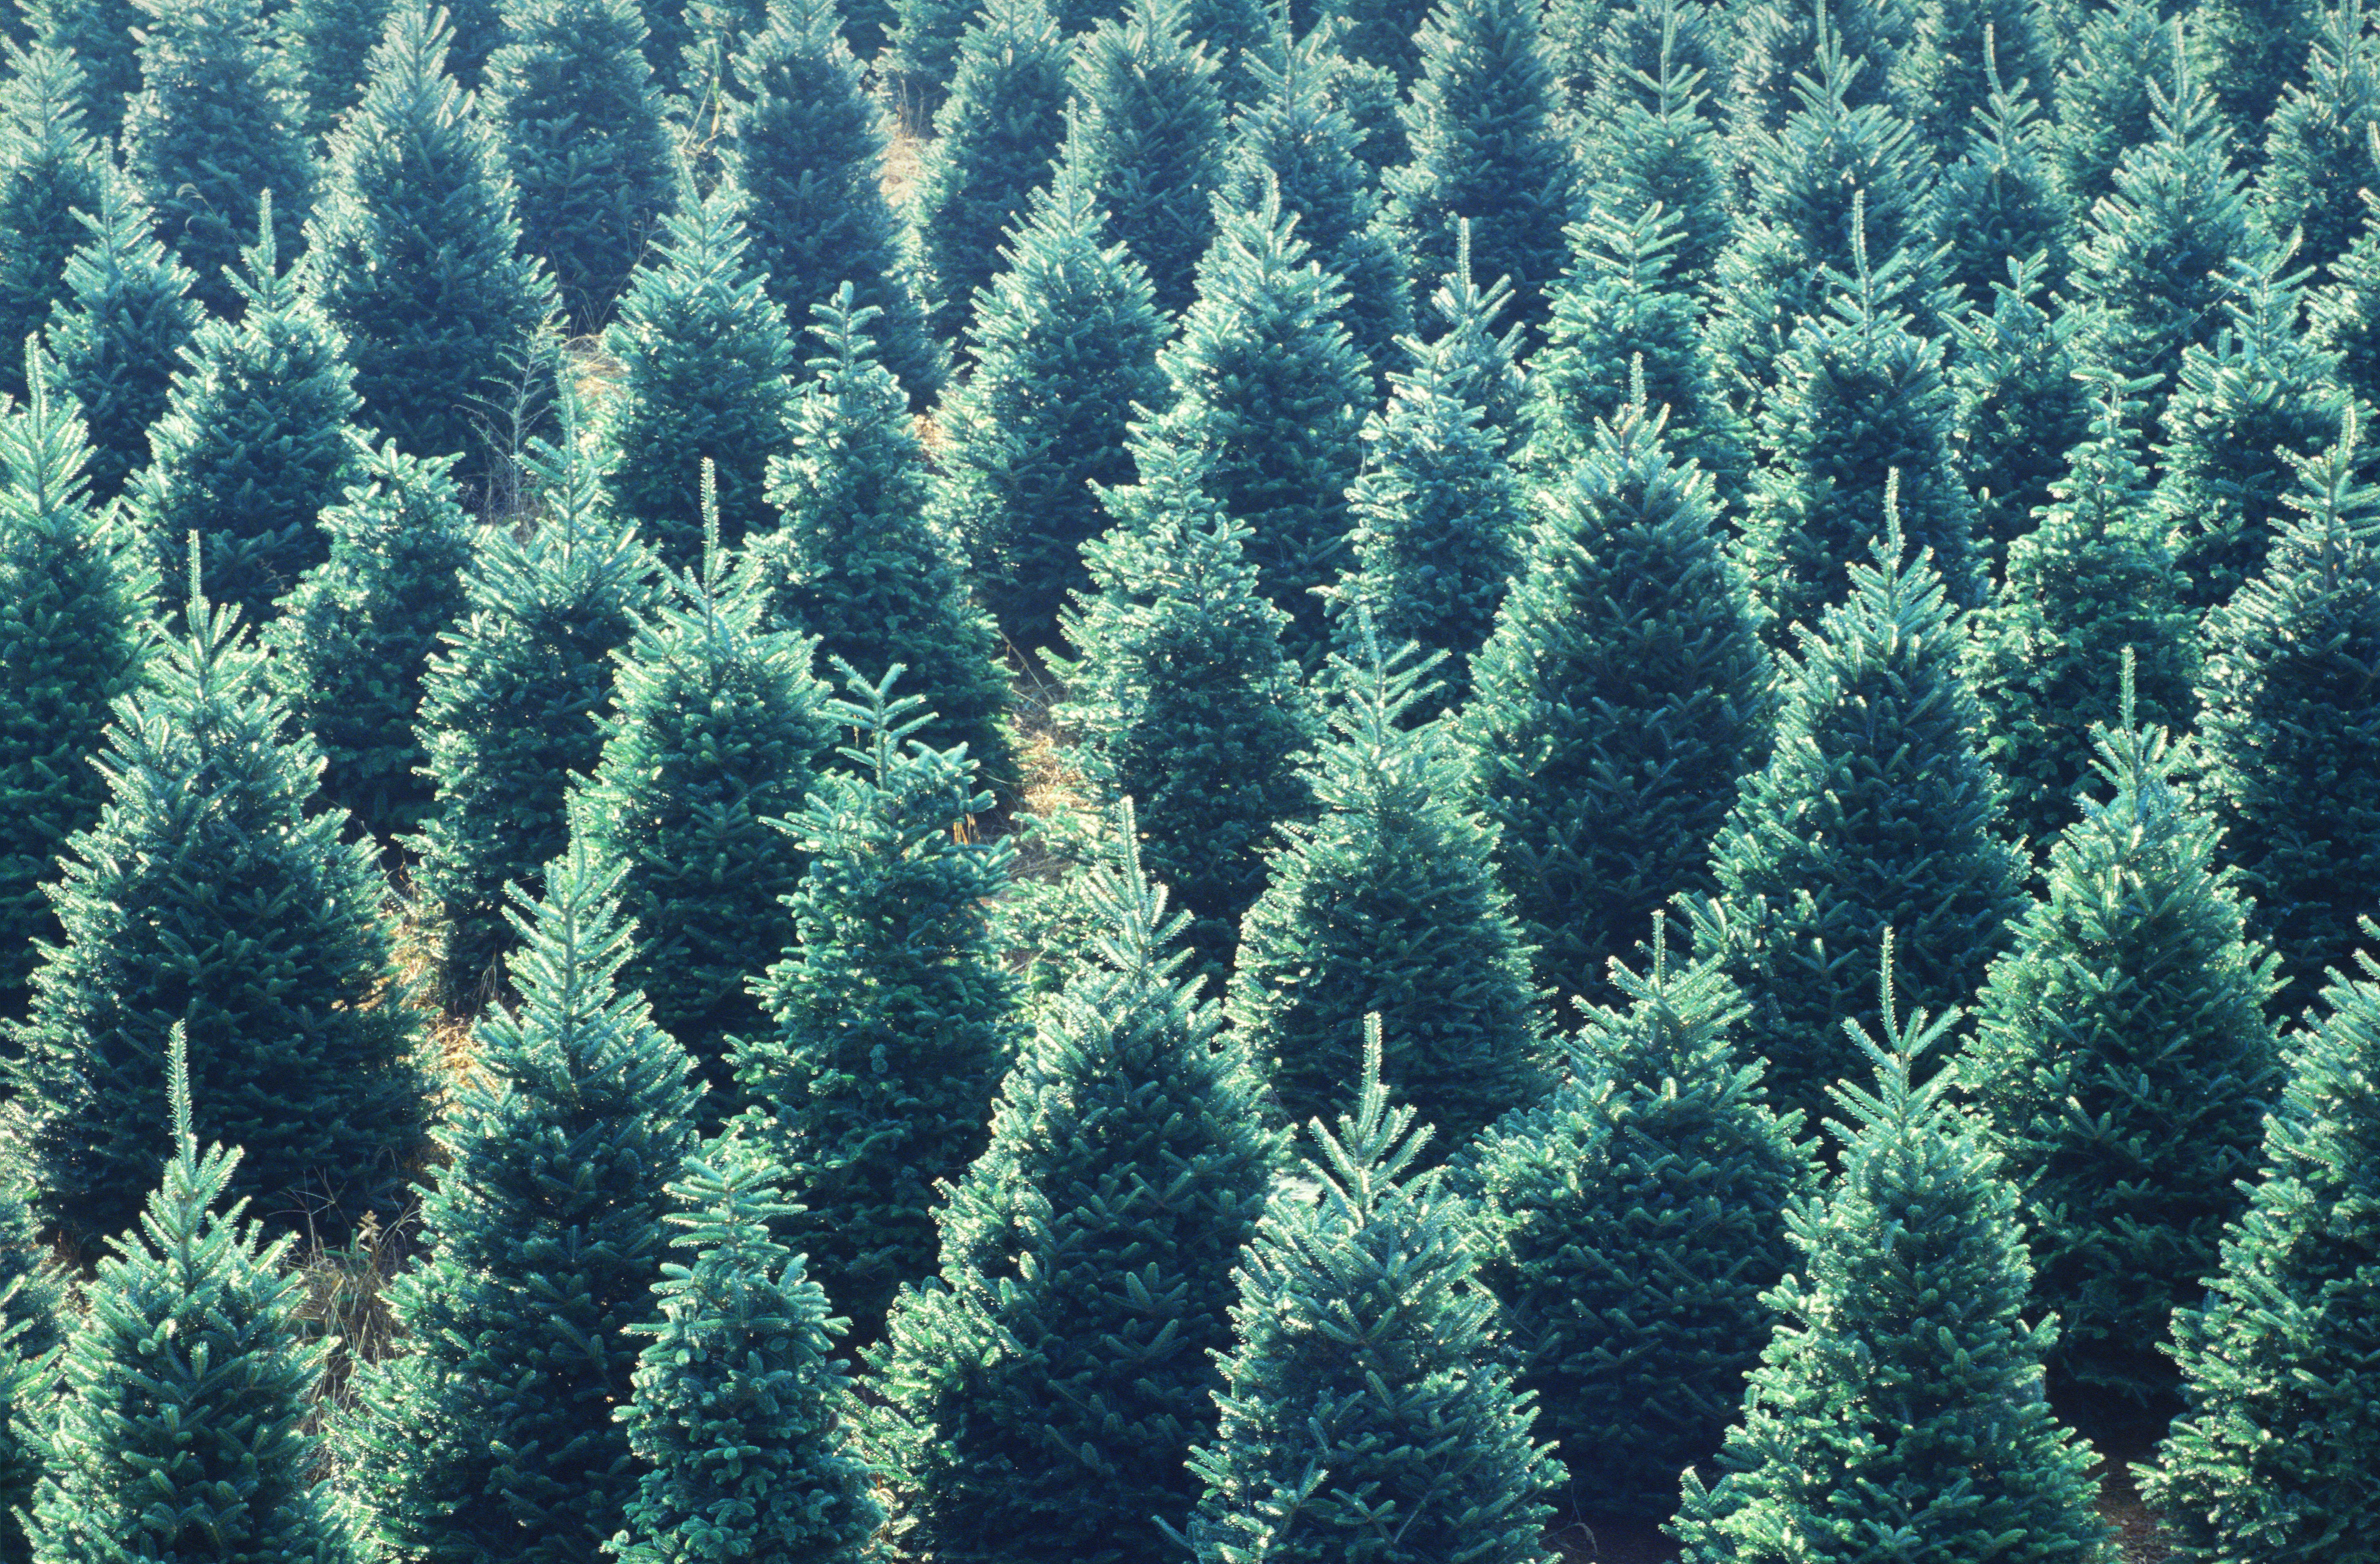 Buying a real Christmas tree this year? Take care of it with these tips